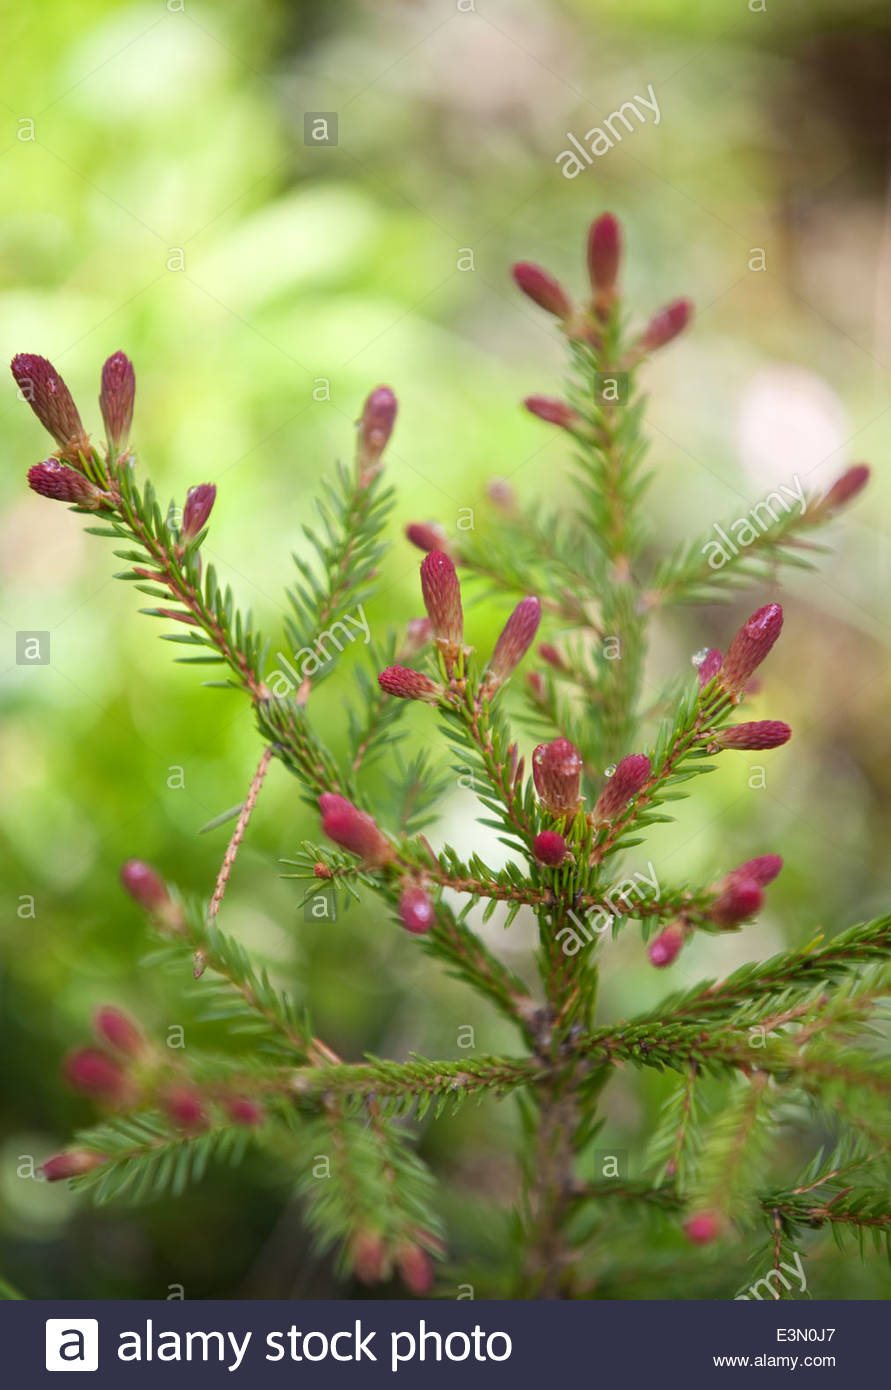 Blooming fir tree - Stock Image